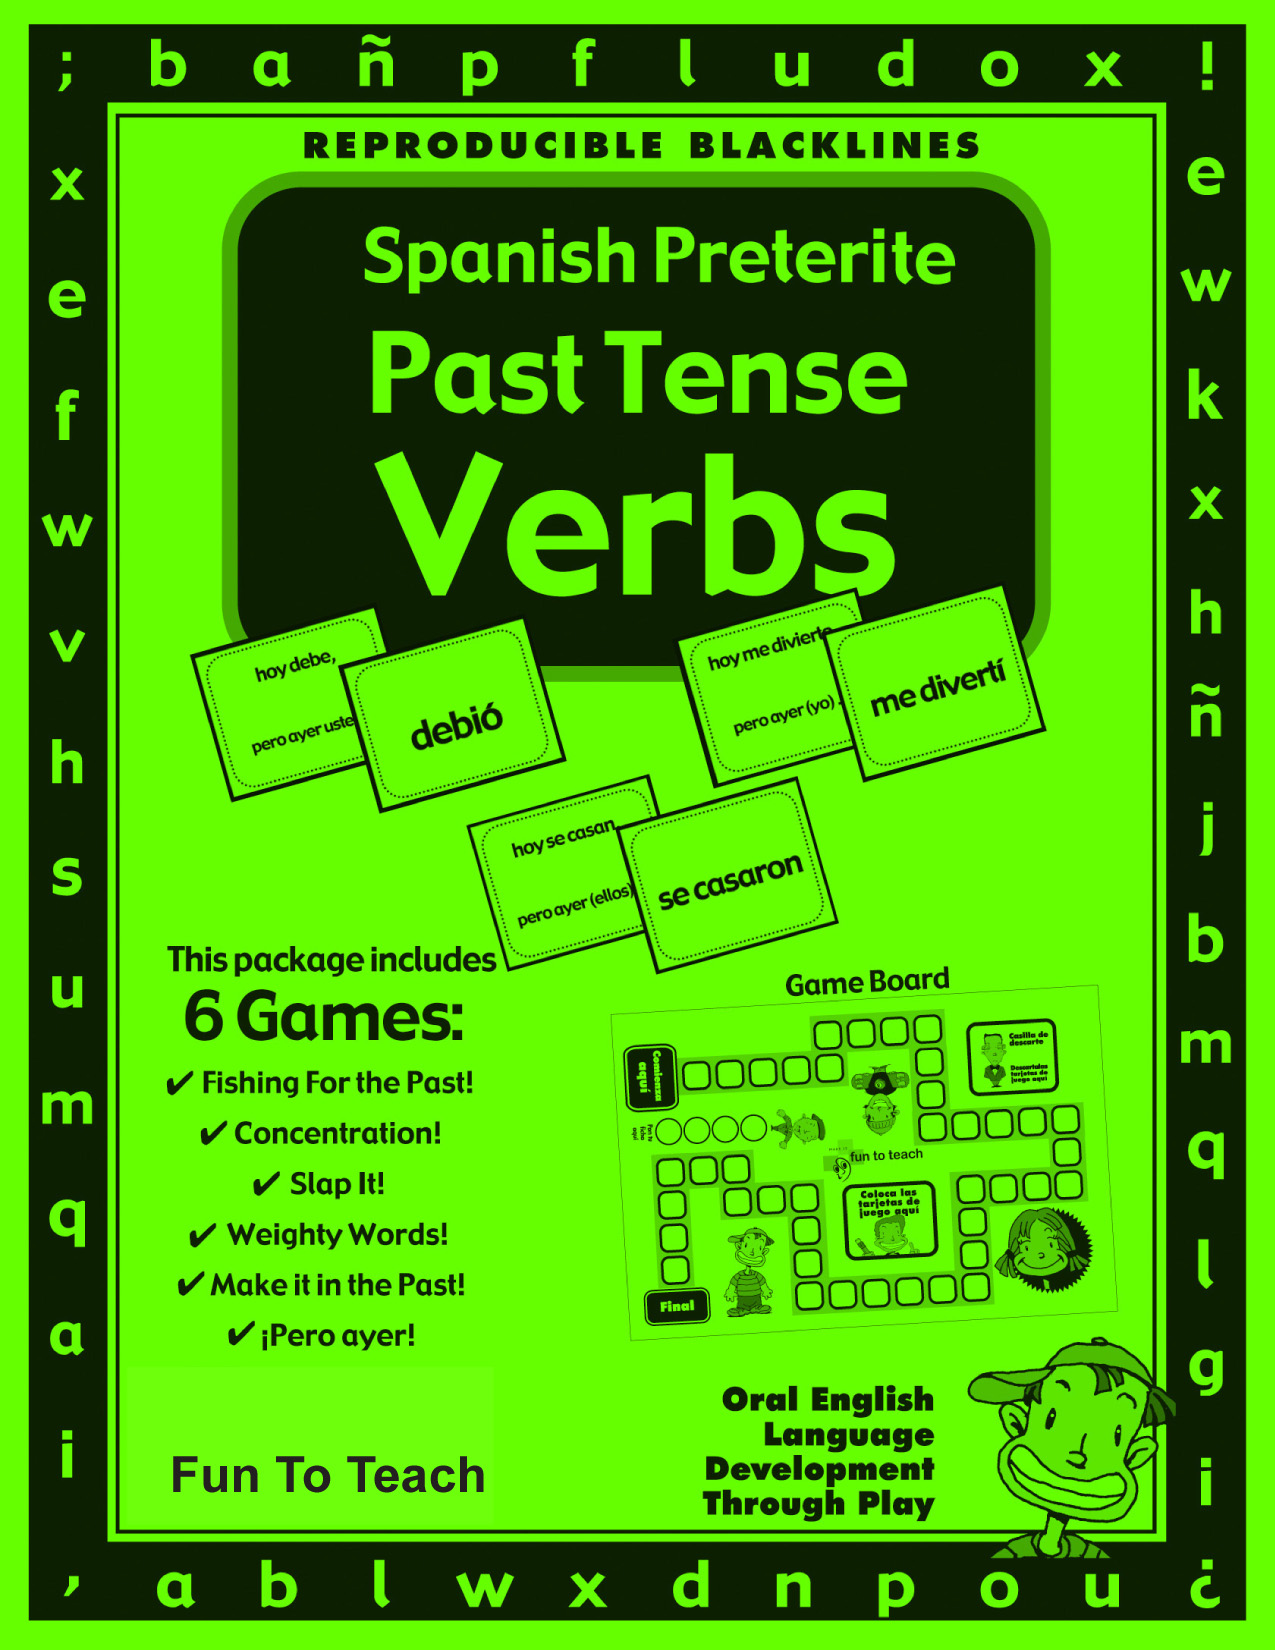 Spanish Preterite Past Tense Verbs Games And Lesson Plans